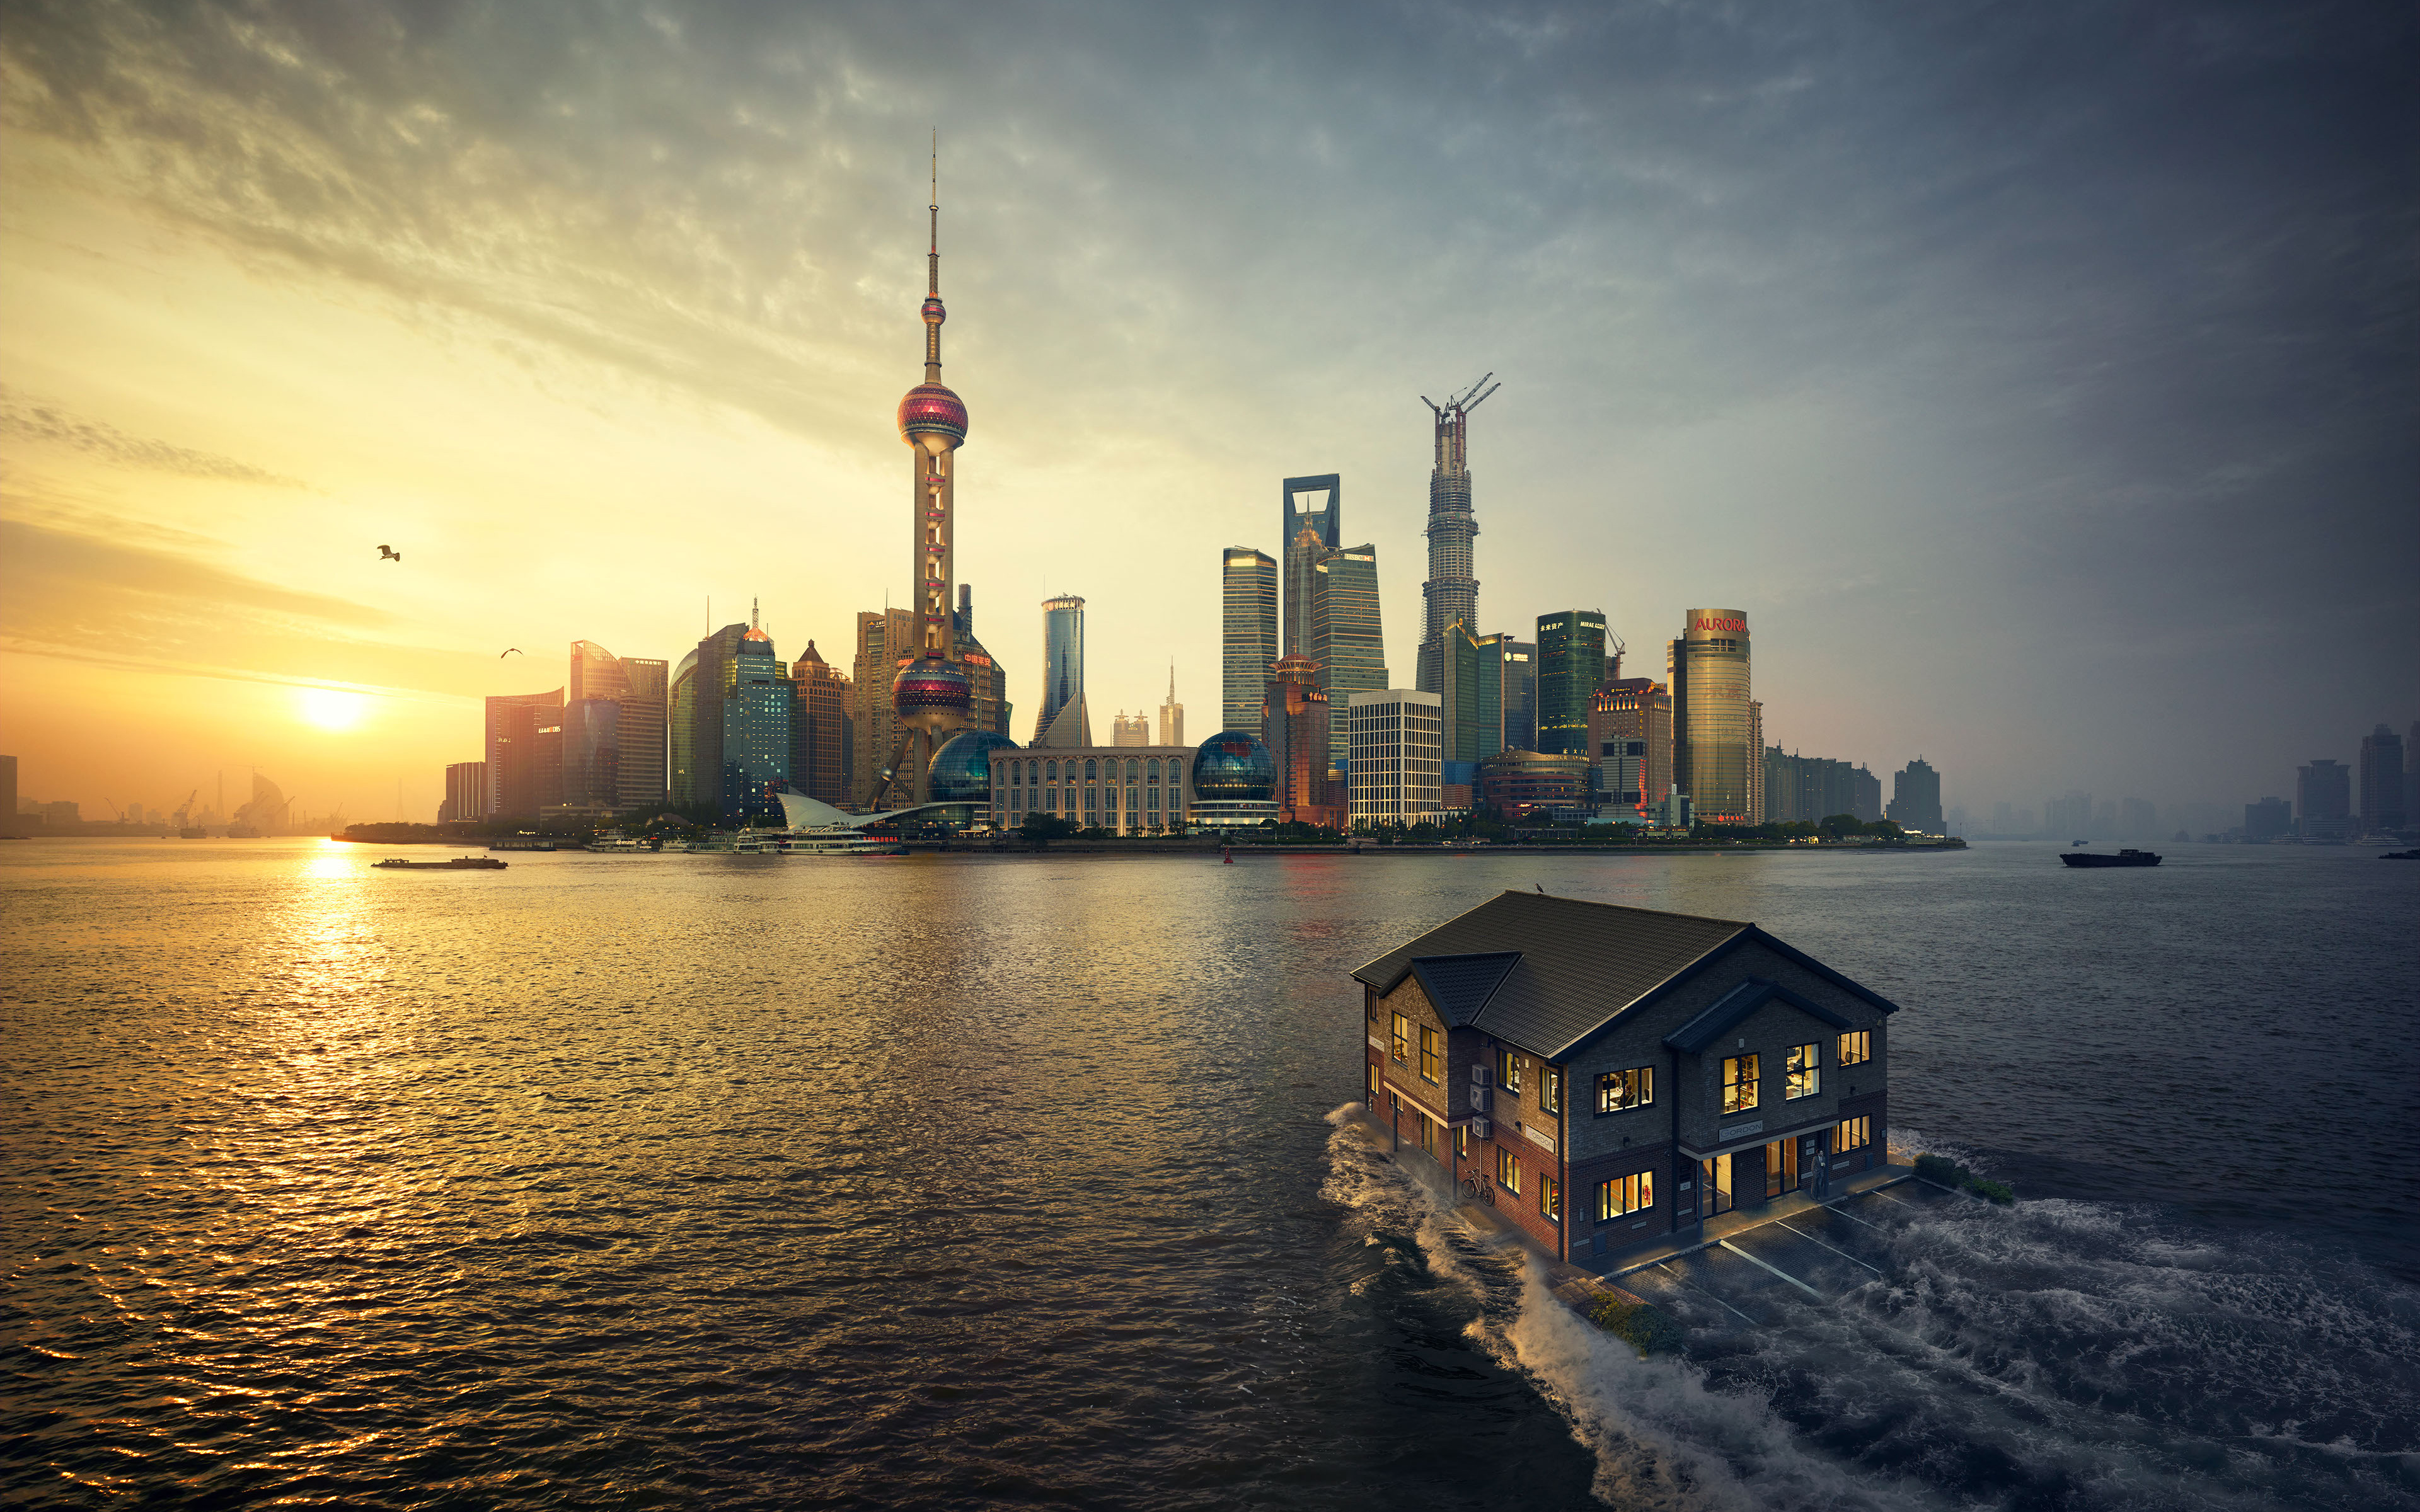 Wallpaper 4k Shanghai Sunset 4k Hdr Shanghai Sunset